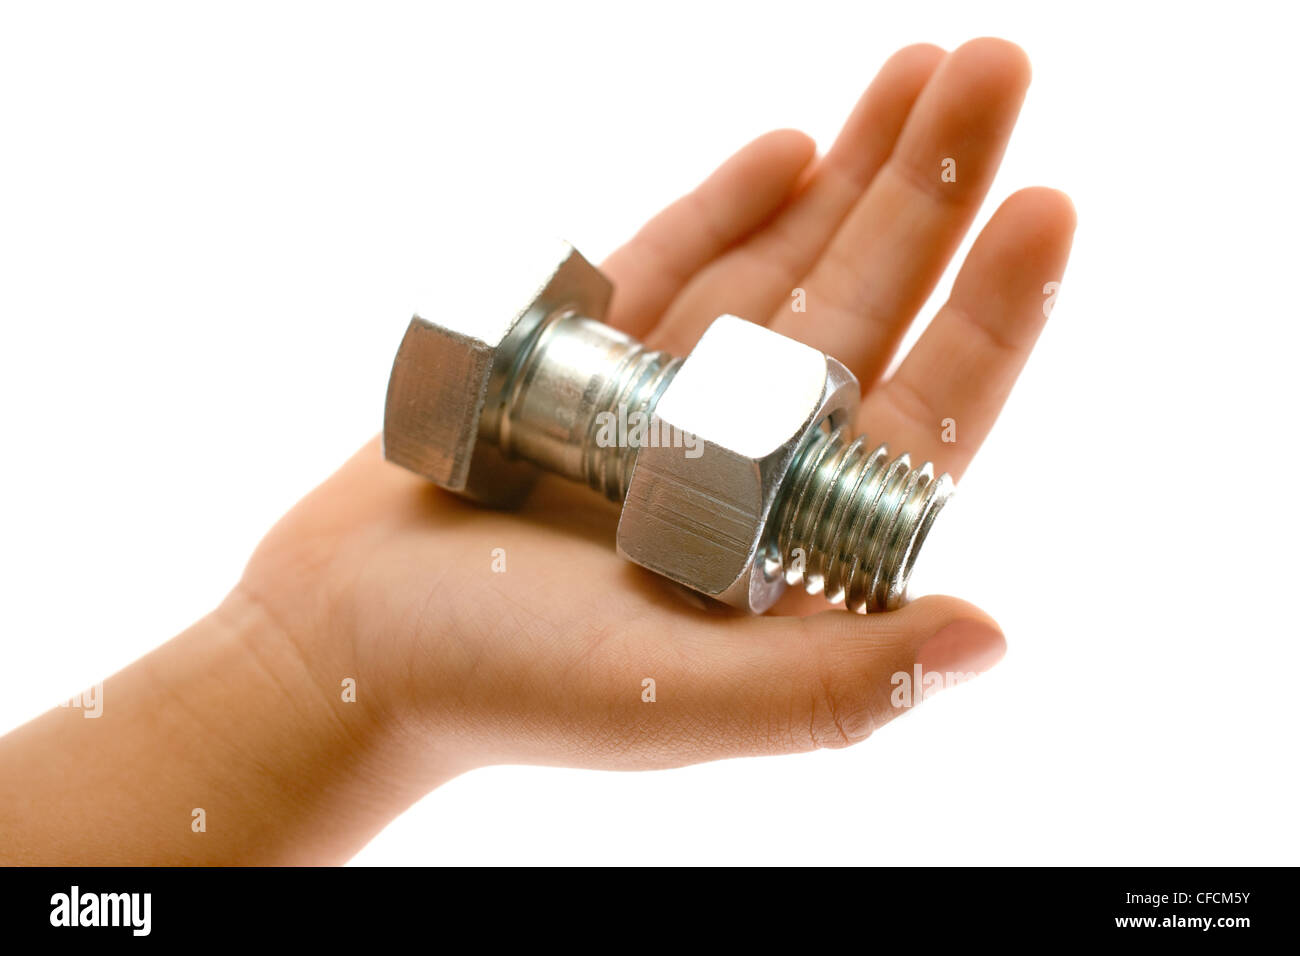 Large Nuts And Bolts : Hand holding a large silver metal bolt and nut over